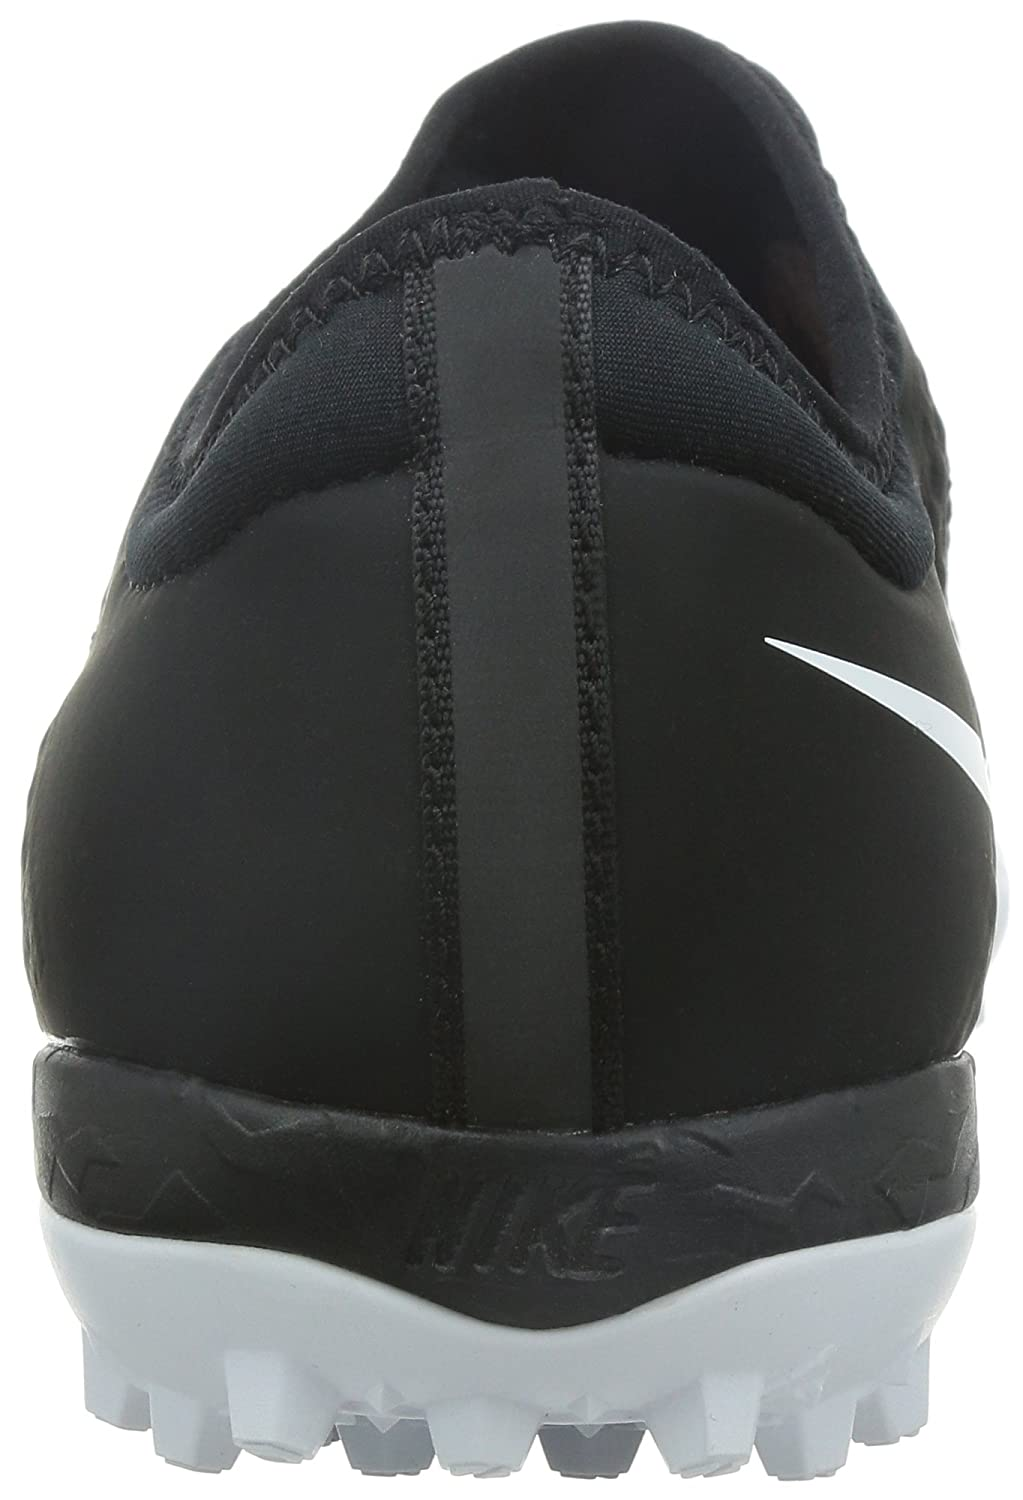 outlet store 625e5 bce28 ... get nike mercurialx finale street tf mens football shoes 725247 018 8  buy online at low